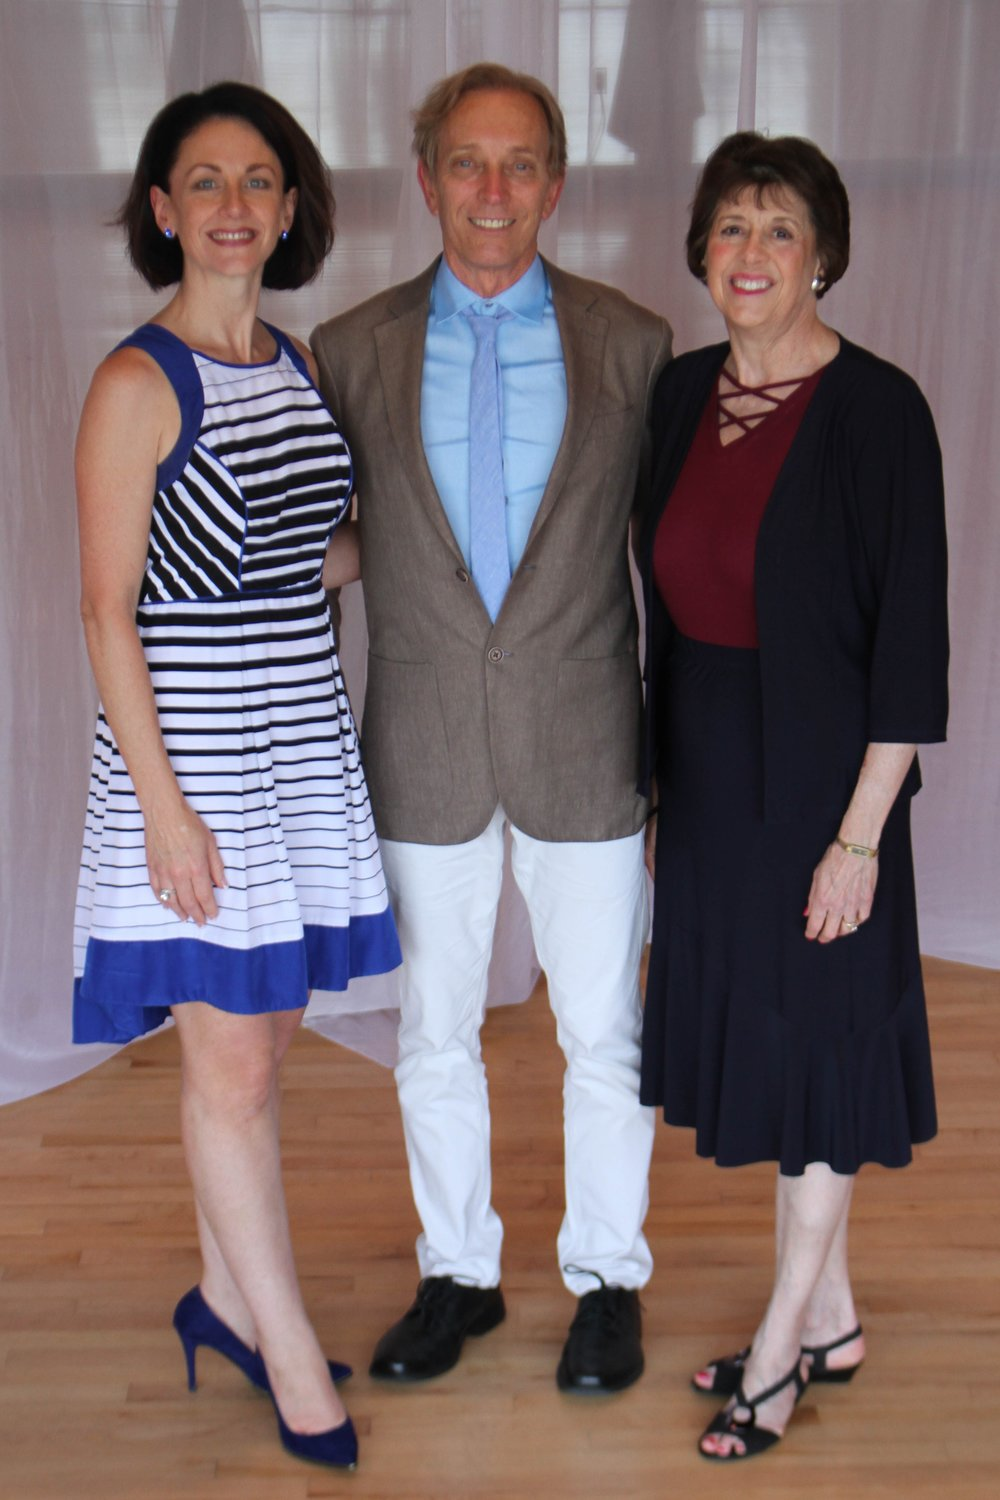 dennis yelkin, chairman of the board for heart of dance, with andrea mirenda (left) and ember reichgott junge (right) co-founders and co-presidents